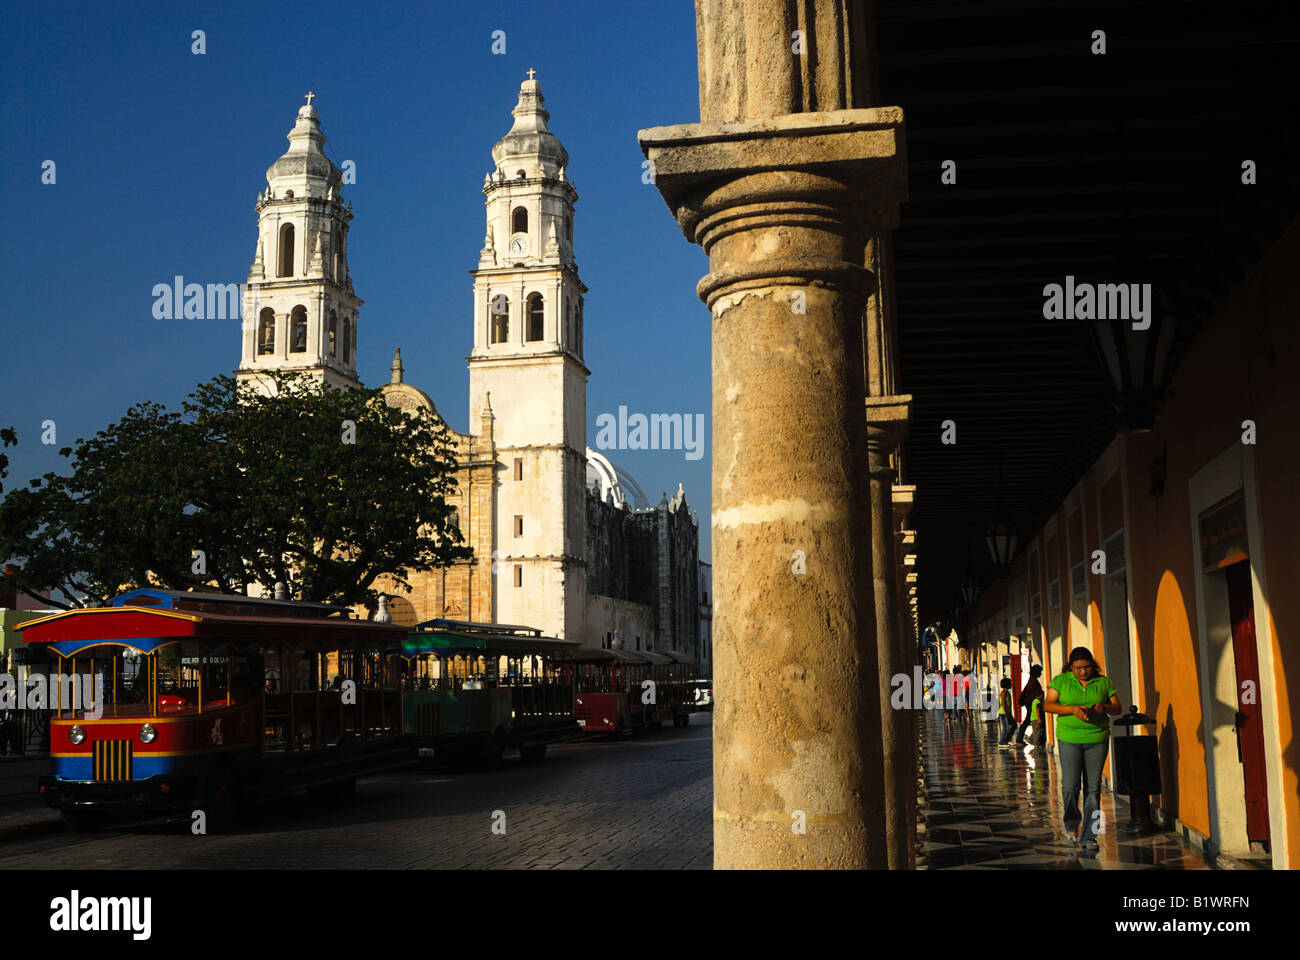 The Campeche Cathedral, Yucatan, Mexico Stock Photo